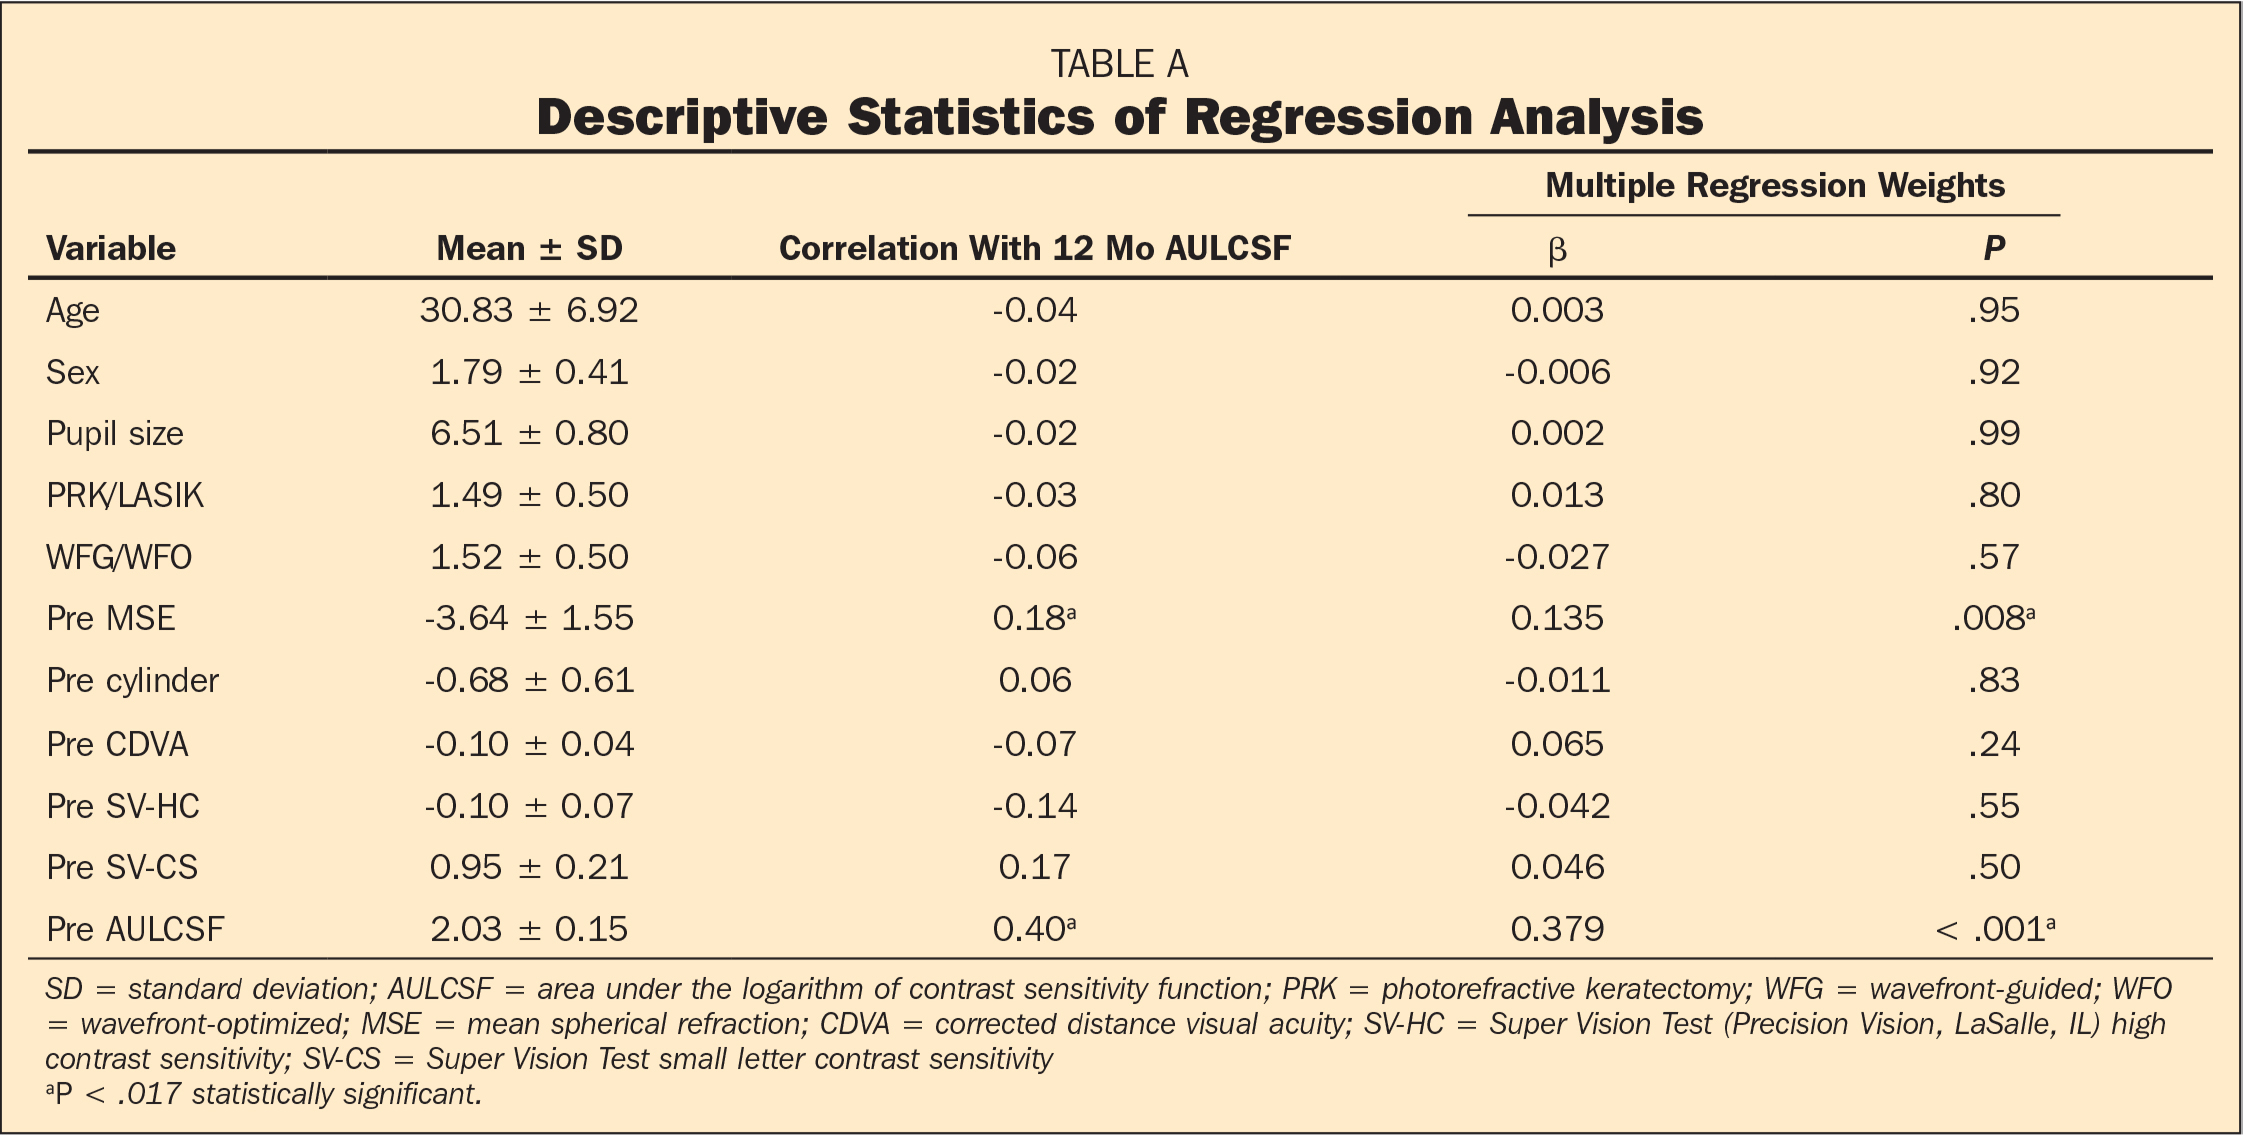 Descriptive Statistics of Regression Analysis